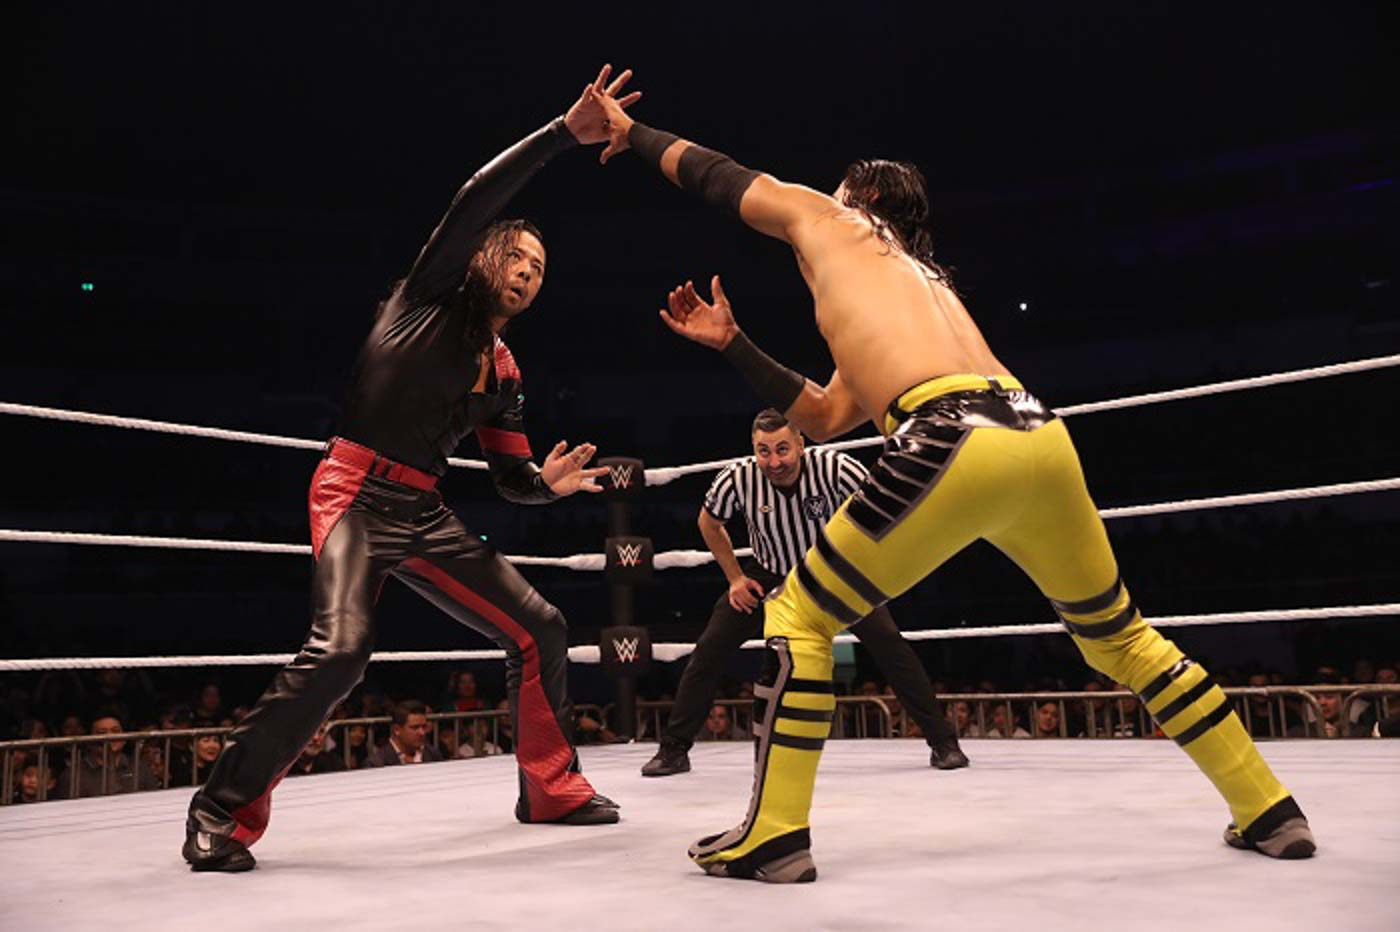 SUCCESS. Shinsuke Nakamura defends his WWE Intercontinental Championship title over Ali. Photo from release